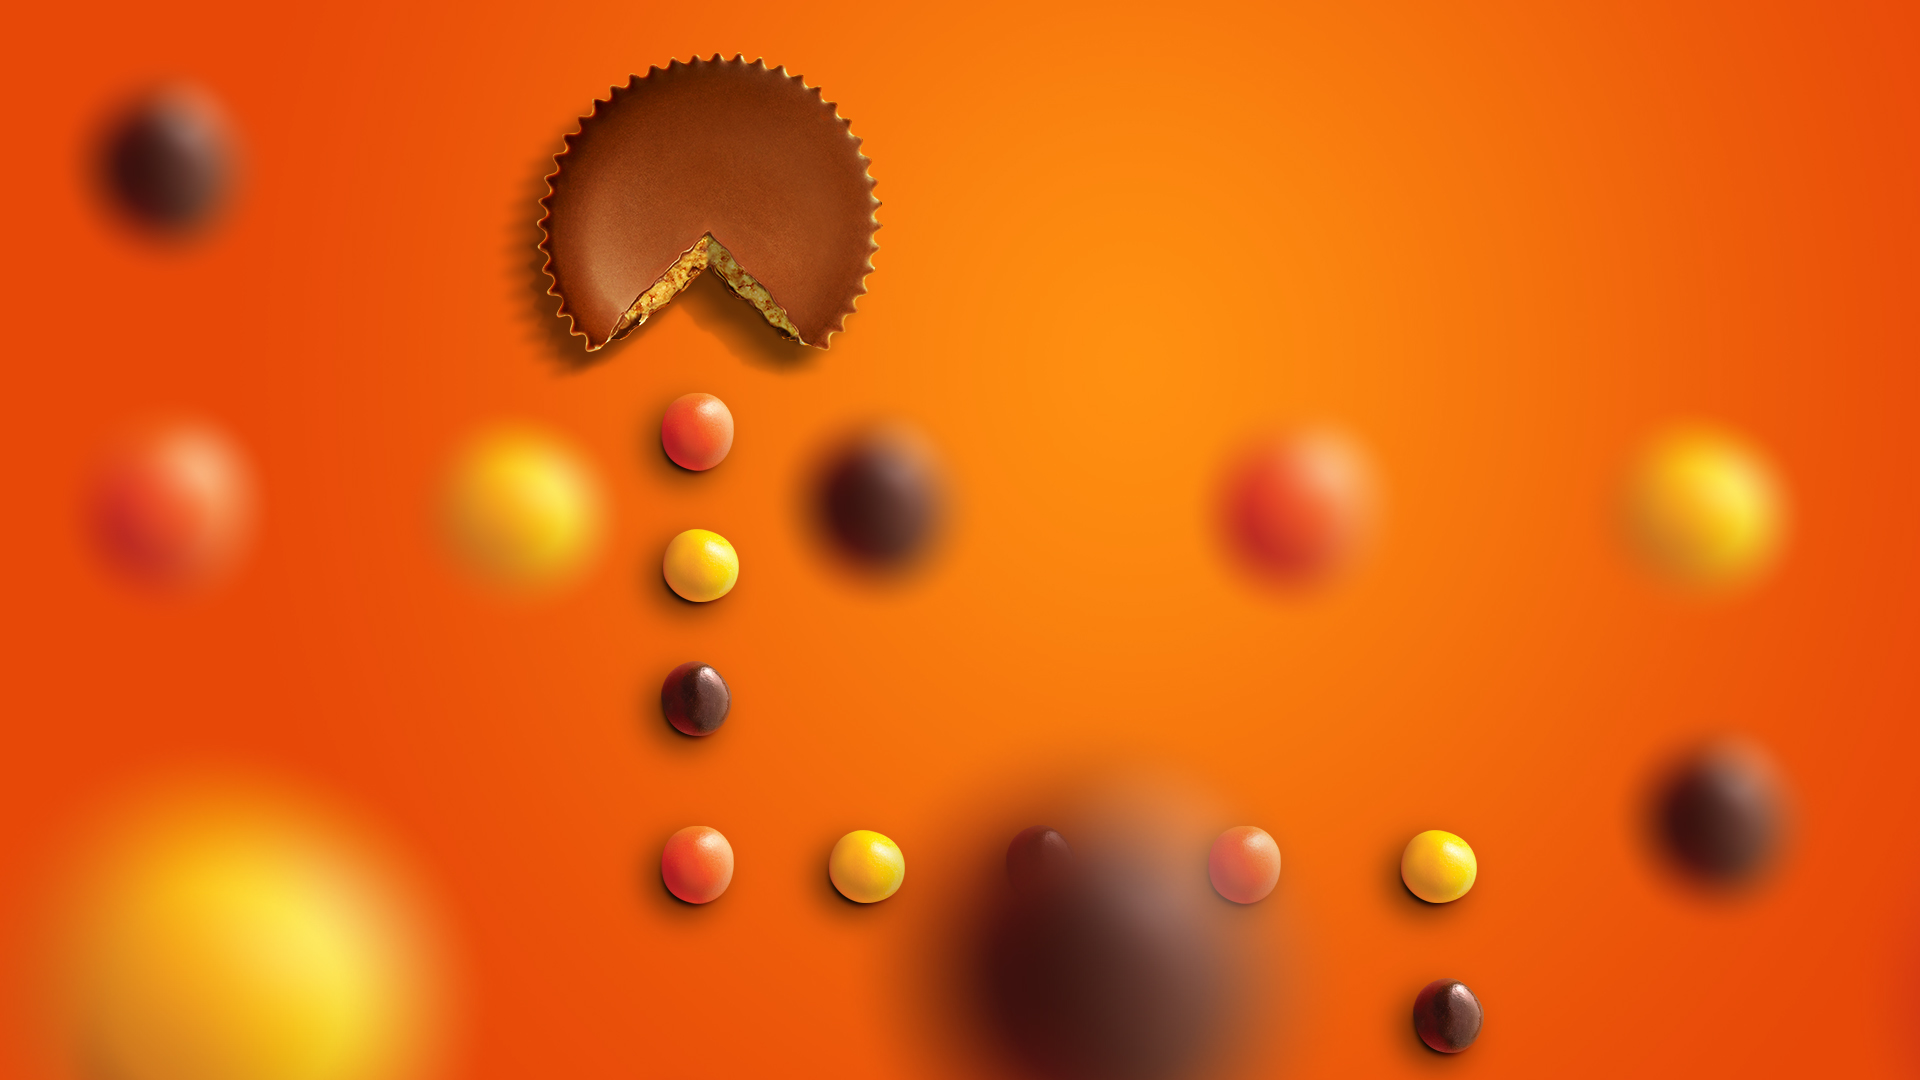 Reeses_PacMan_A_04.jpg